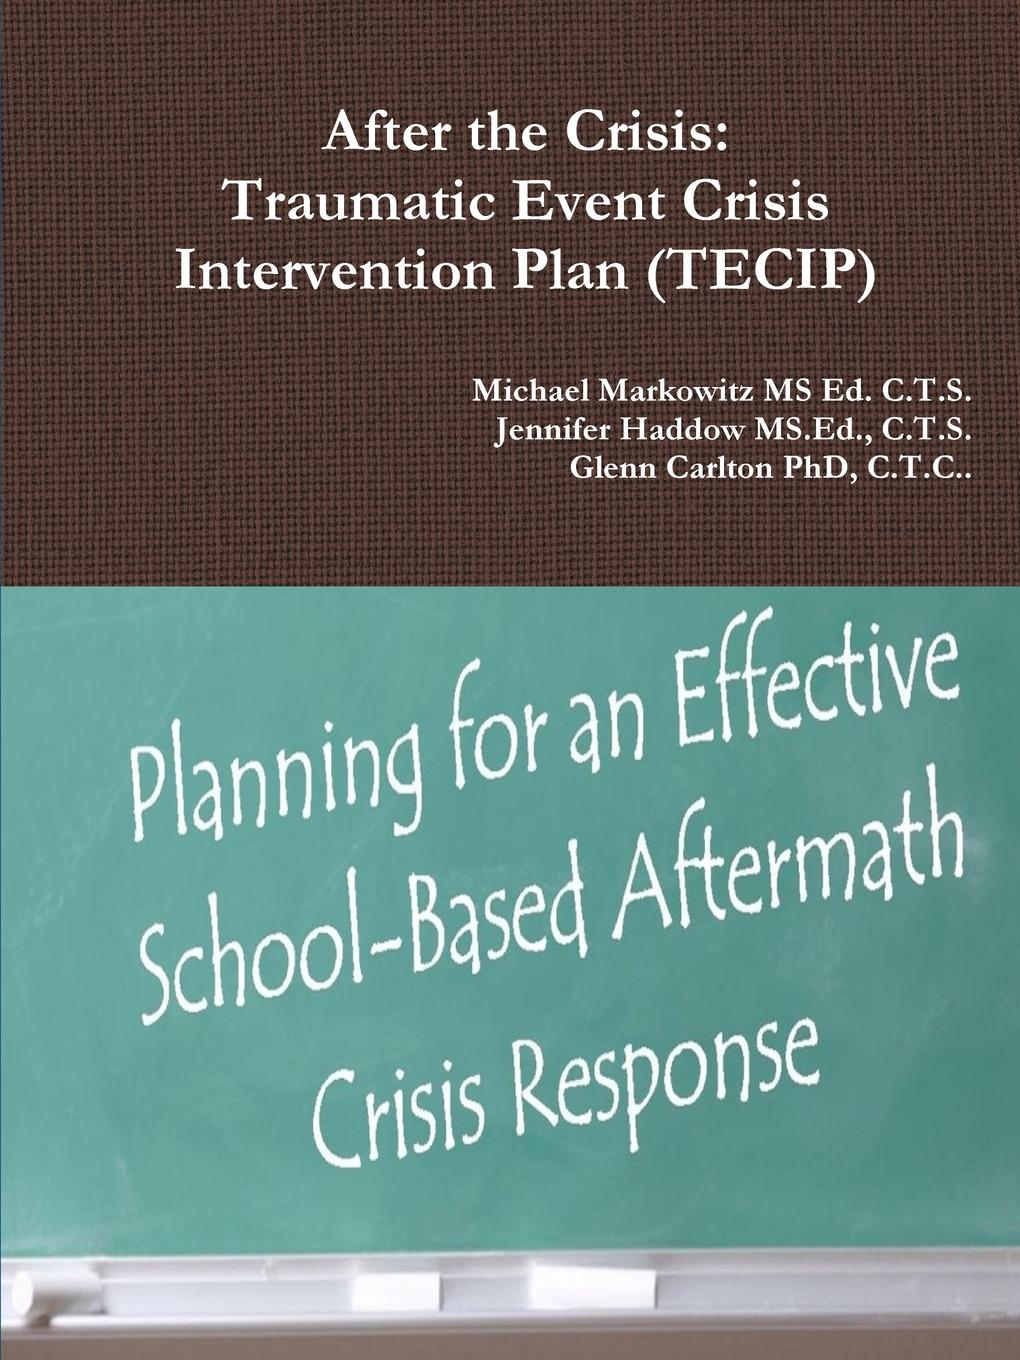 C.T.S. Jennifer Haddow MS.Ed., Michael Markowitz MS Ed. C.T.S., C.T.C.. Glenn Carlton PhD After the Crisis. Traumatic Event Crisis Intervention Plan (TECIP) event